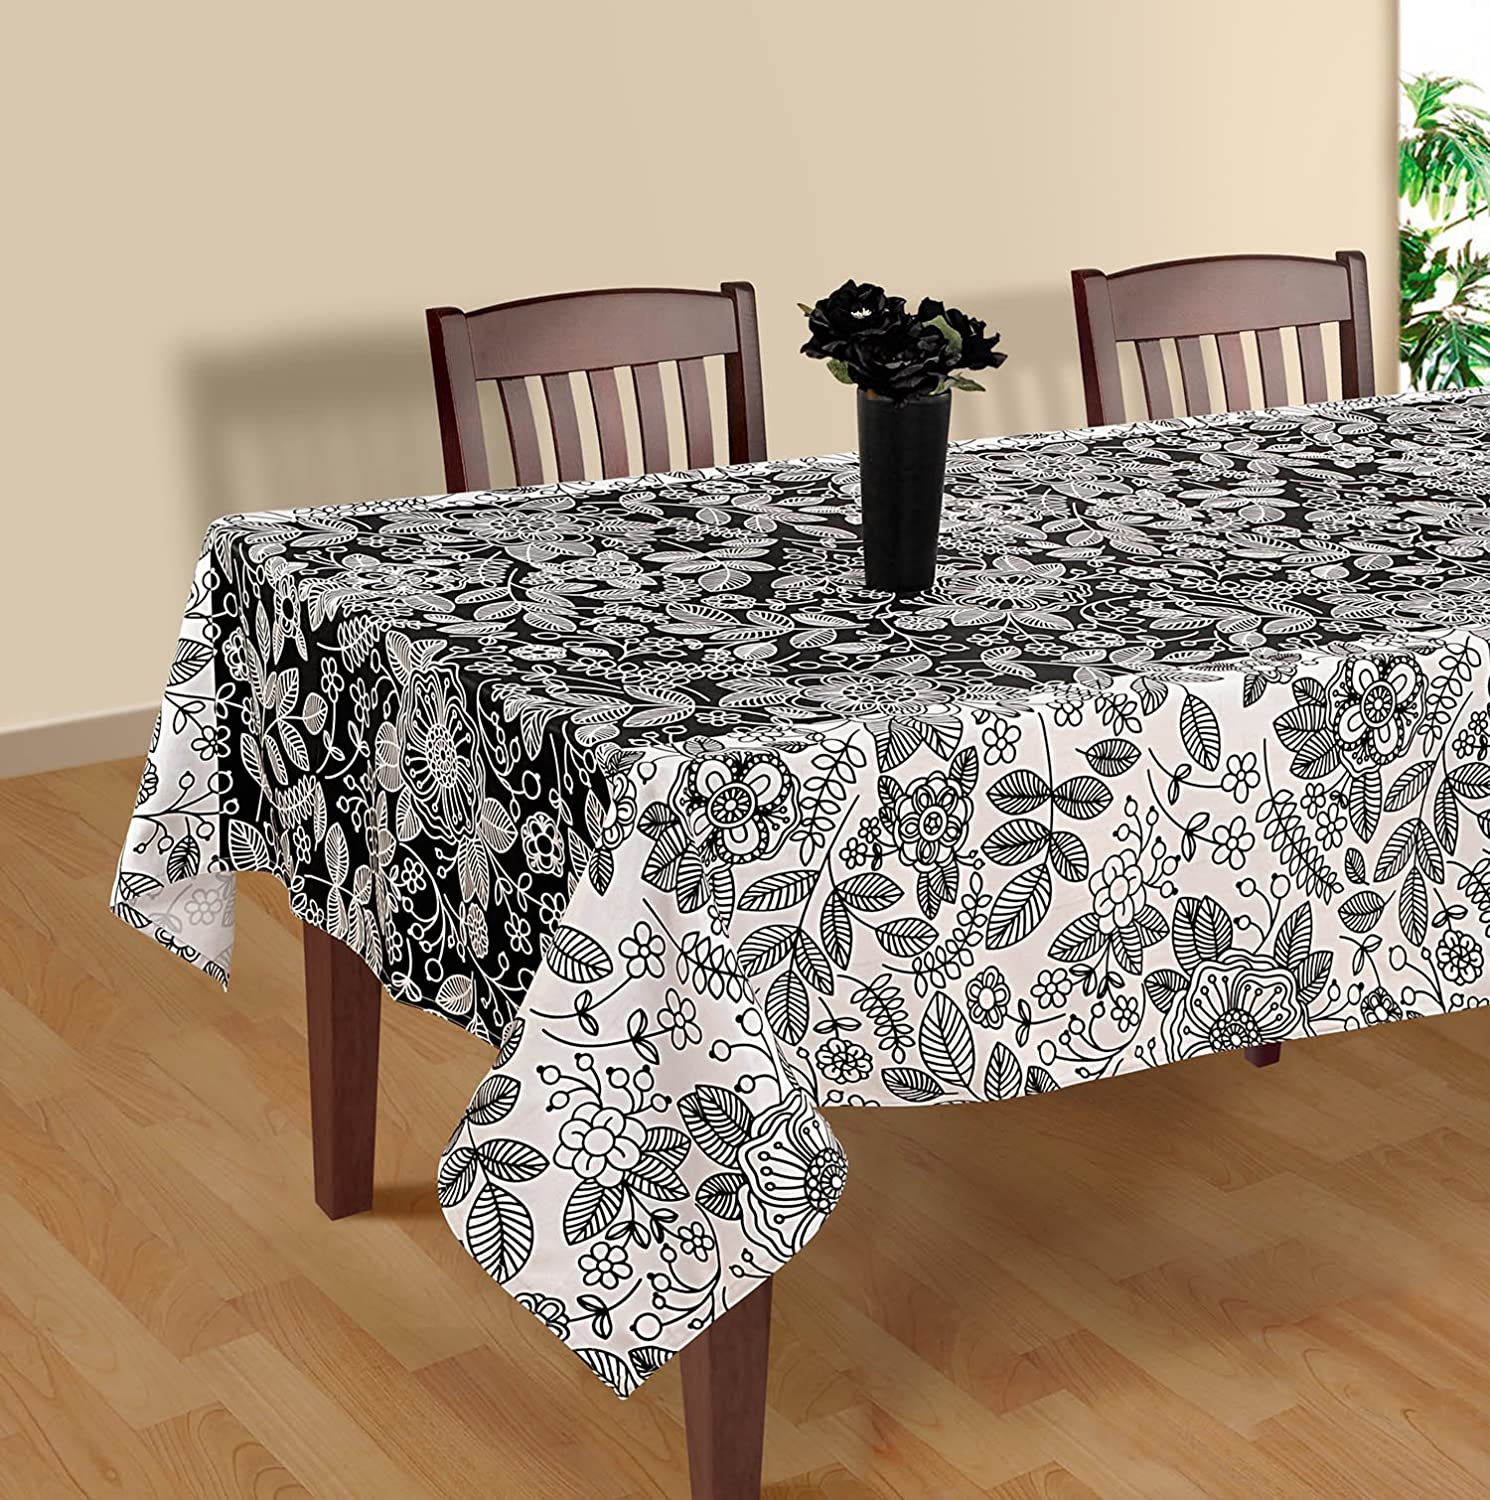 Amazon.com: Black And White Modern Floral Rectangular Tablecloth   60 X 120  Inches Cotton Table Cloth Cover For Tables: Home U0026 Kitchen